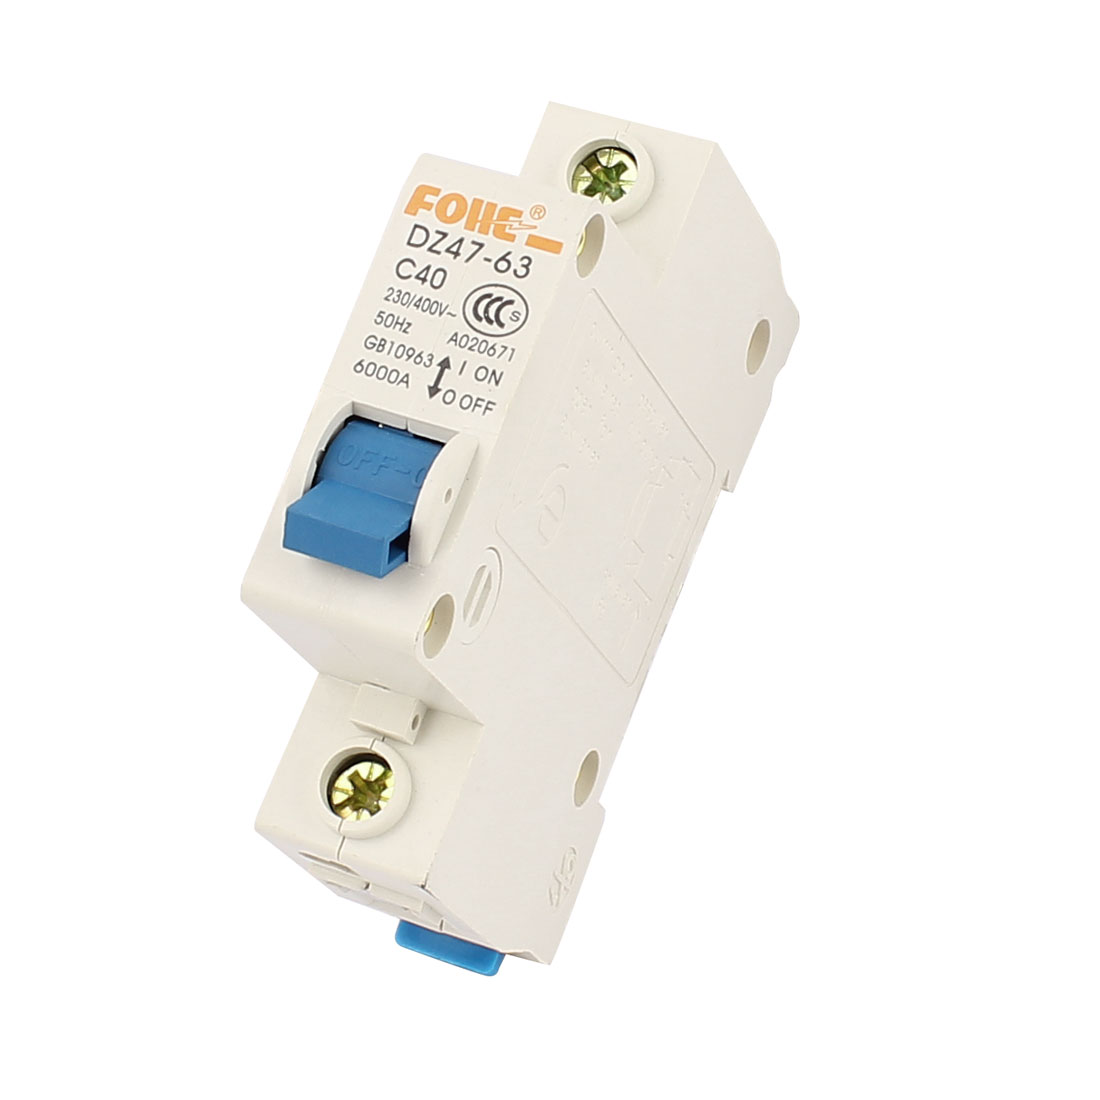 AC 230/400V 40A 1 Pole Overload Protection MCB Circuit Breaker DZ47-63-C40